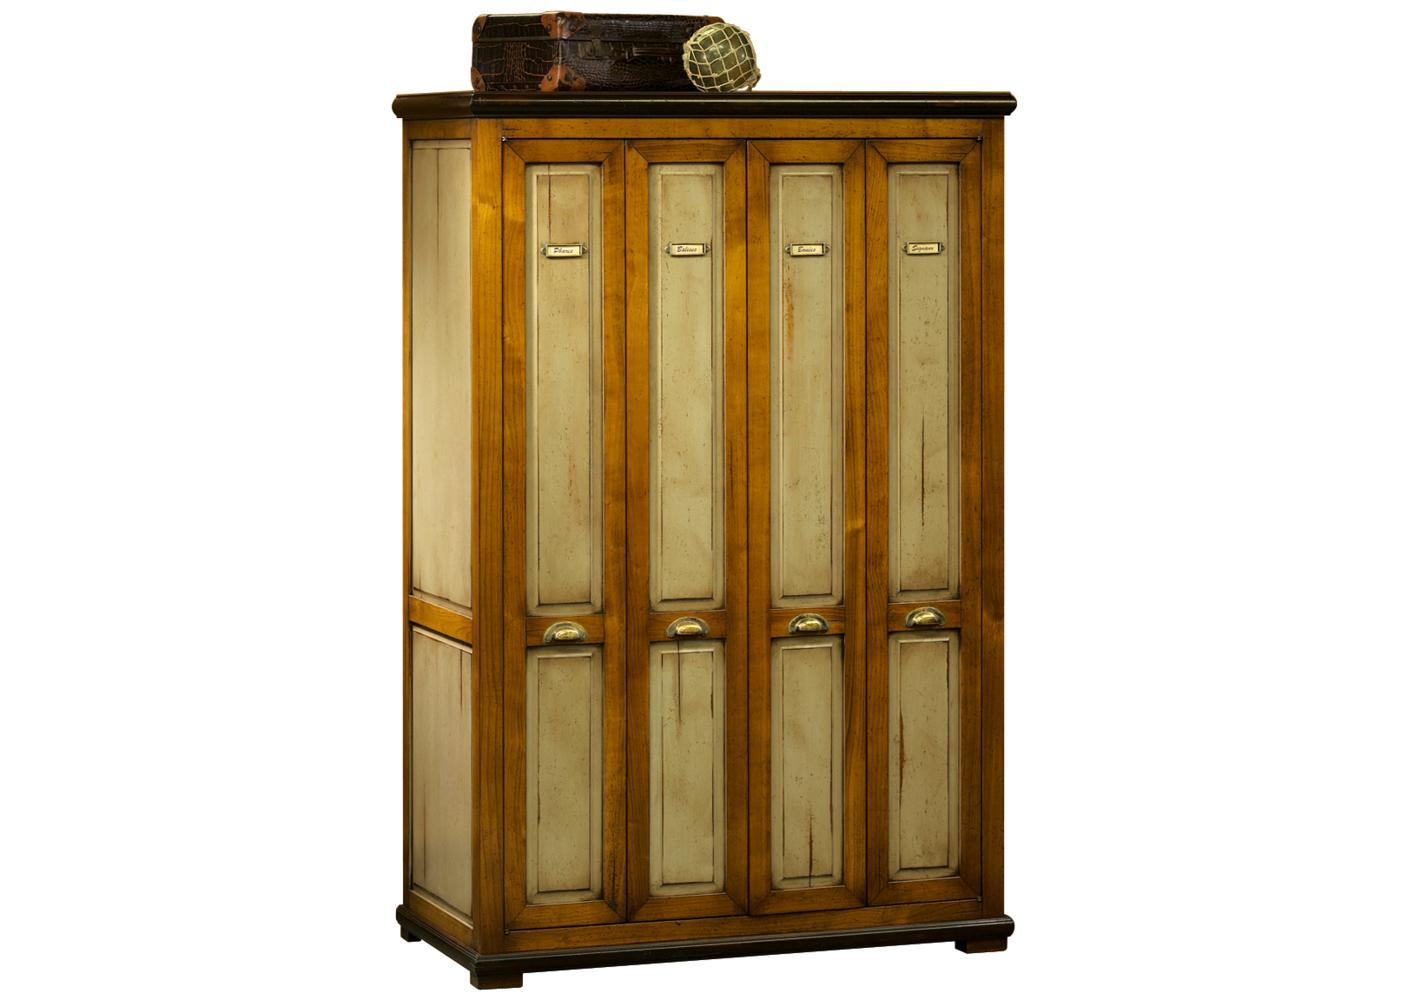 acheter votre vestiaire de phare armoire penderie chez simeuble. Black Bedroom Furniture Sets. Home Design Ideas